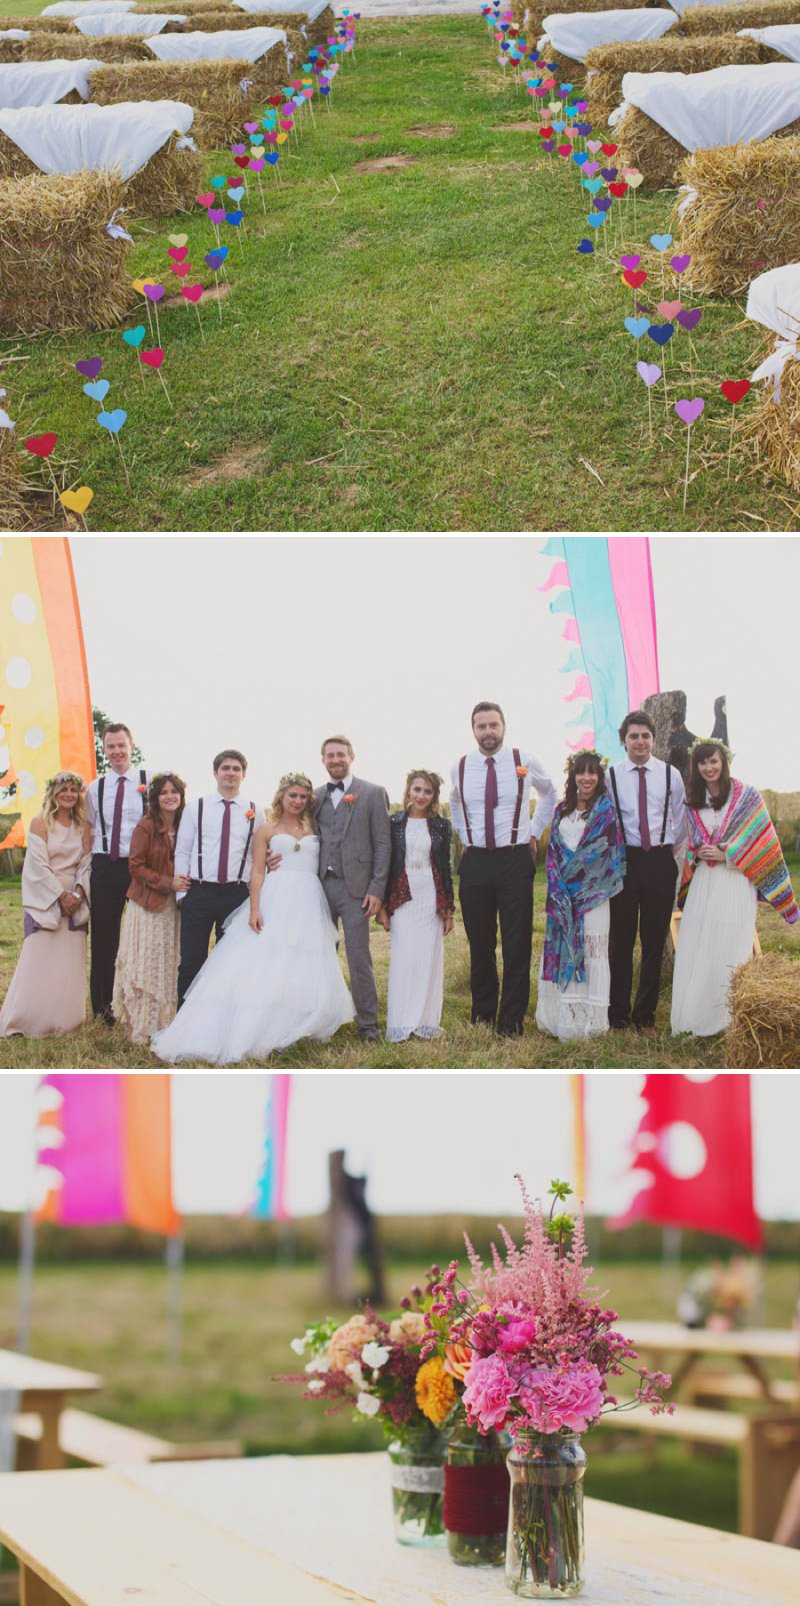 A Glastonbury Themed Bohemian Wedding In Worcestershire With Yurts, Glamping, Food Vans And A Bonfire And Bride In A Floral Crown With Images From Camera Hannah And Event Planning By Jessie Thomson 1